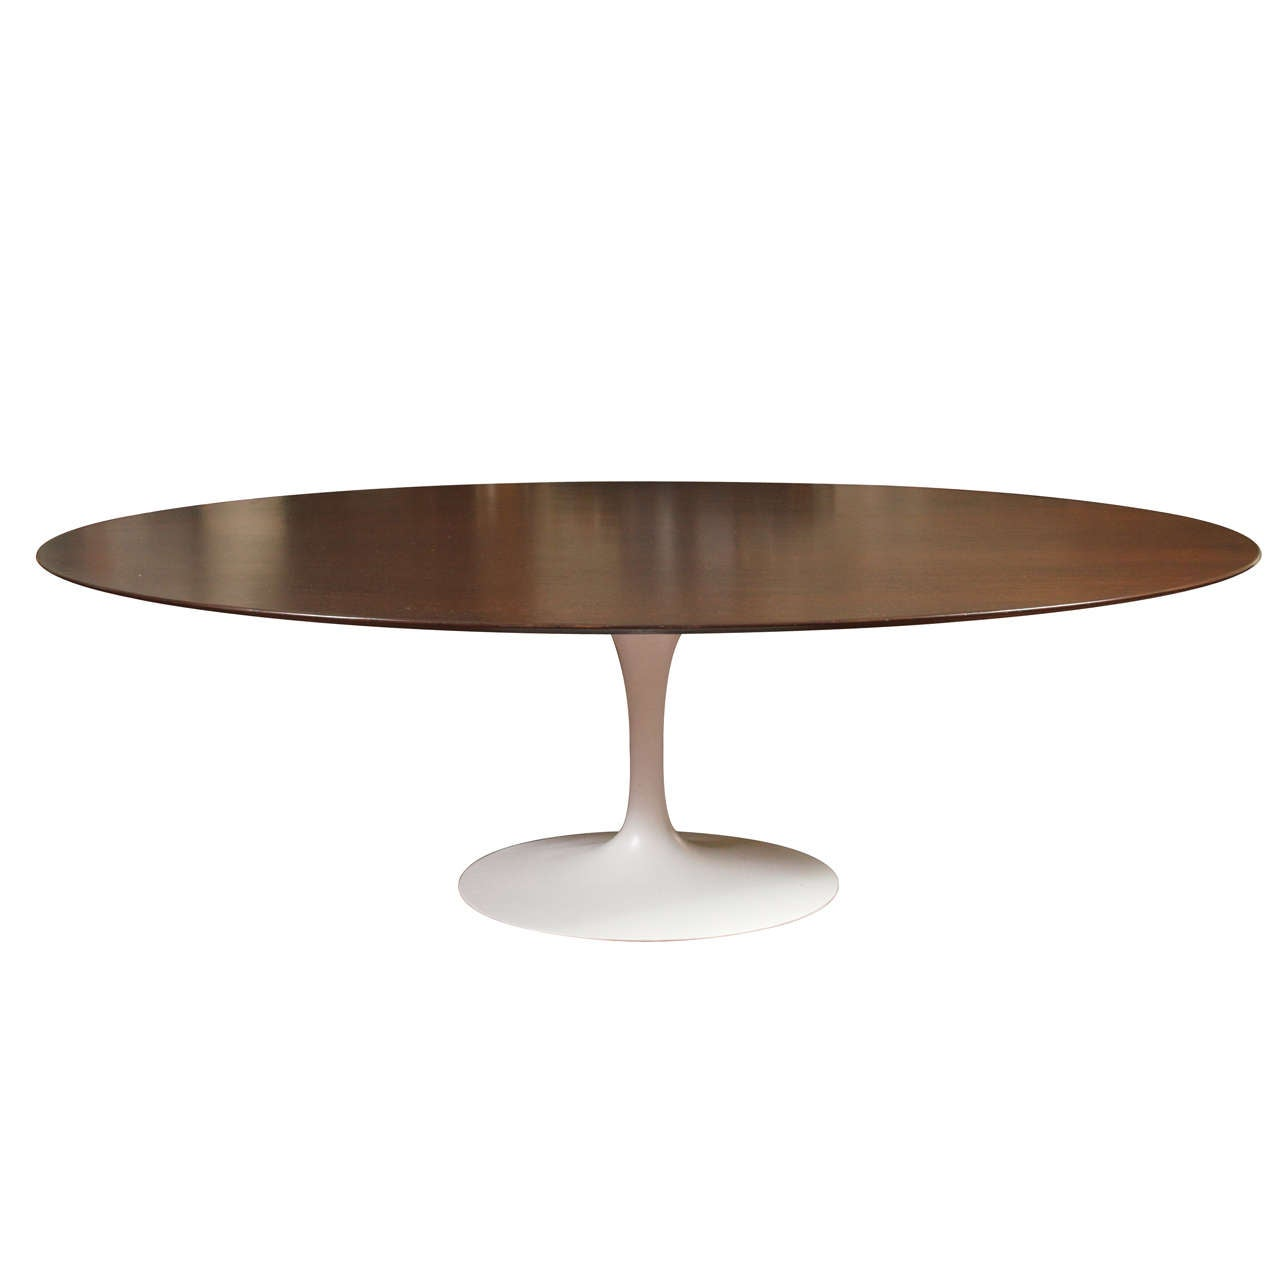 Knoll associates eero saarinen walnut oval dining table at for Knoll associates